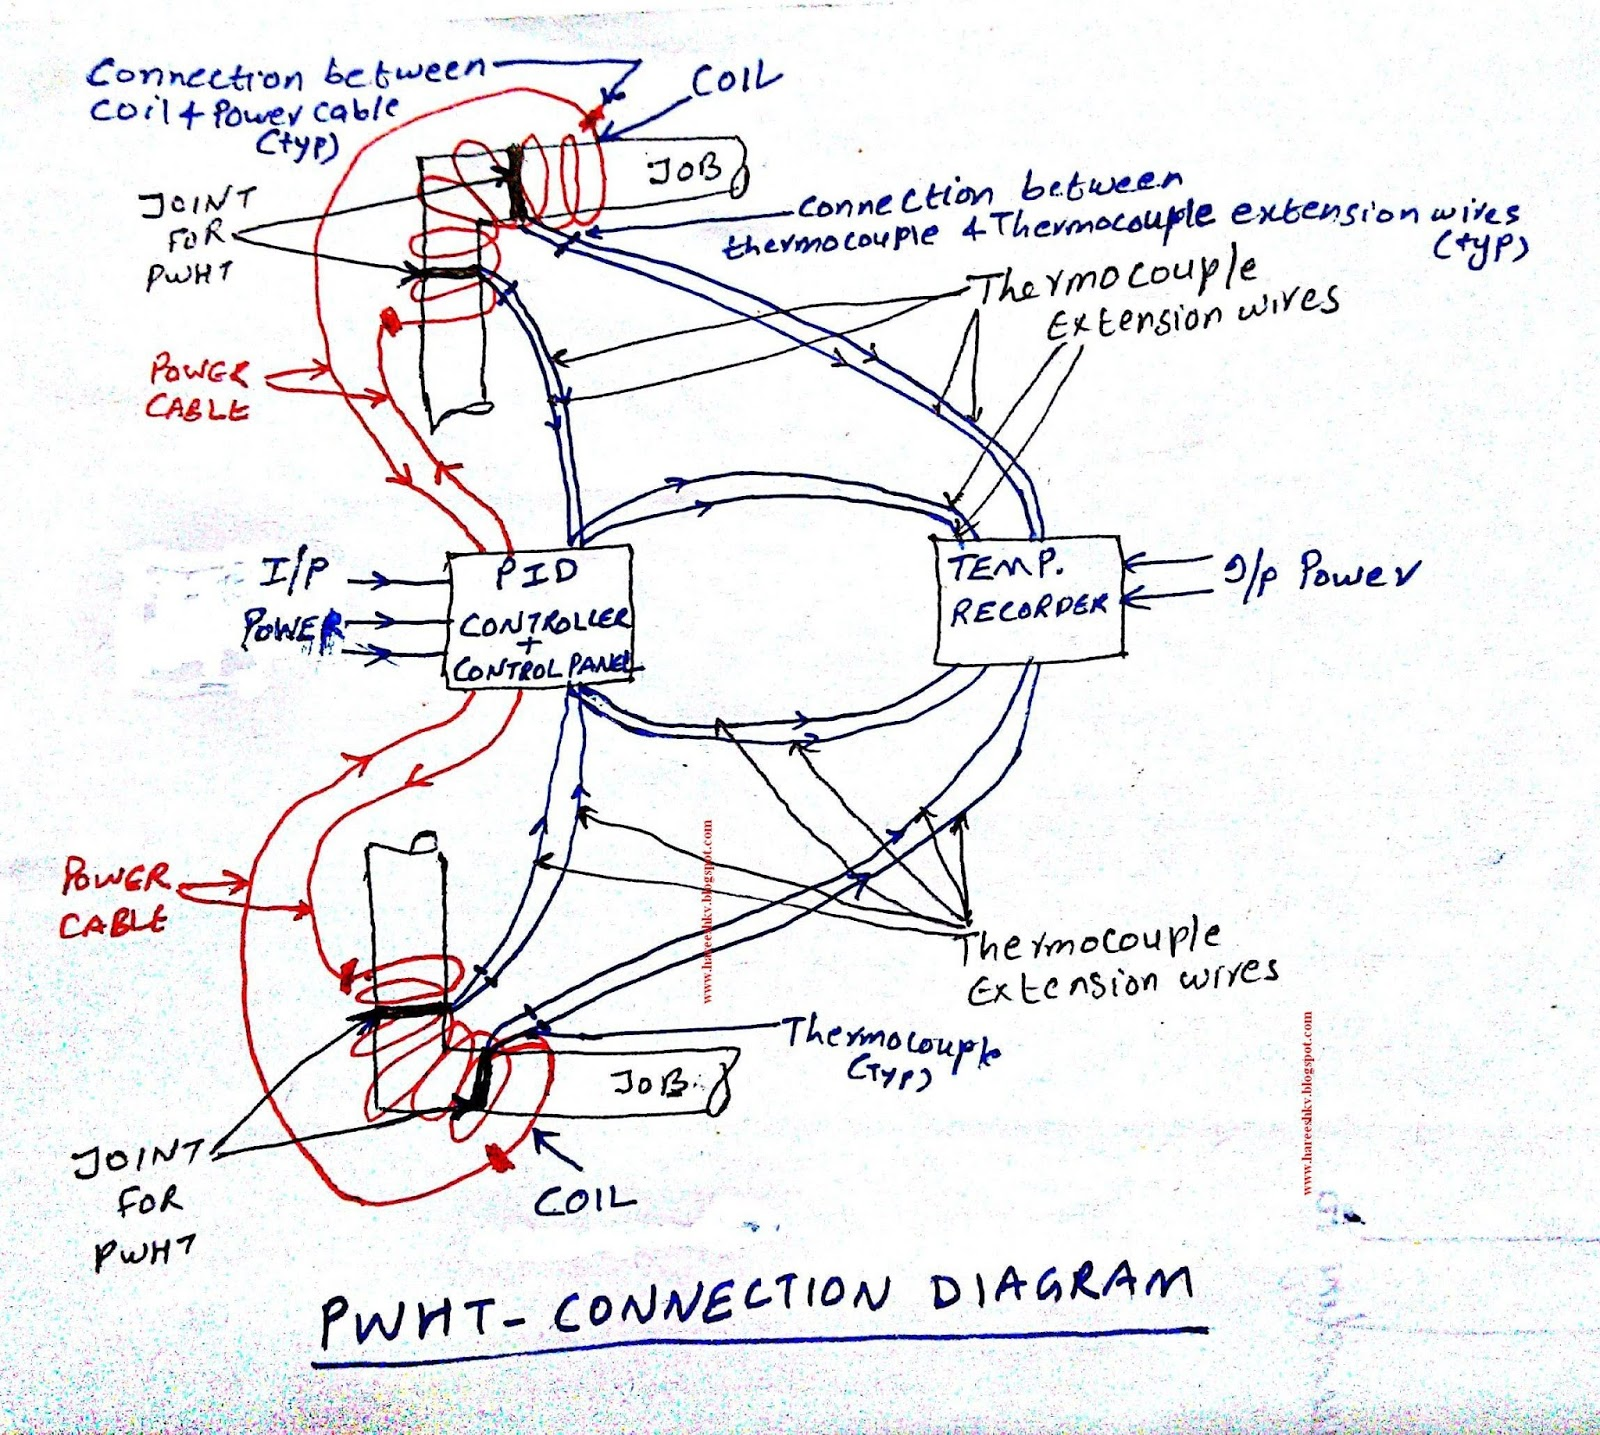 hight resolution of pwht part 3 pwht equipment connection mechanical construction welding machine wiring diagram below is